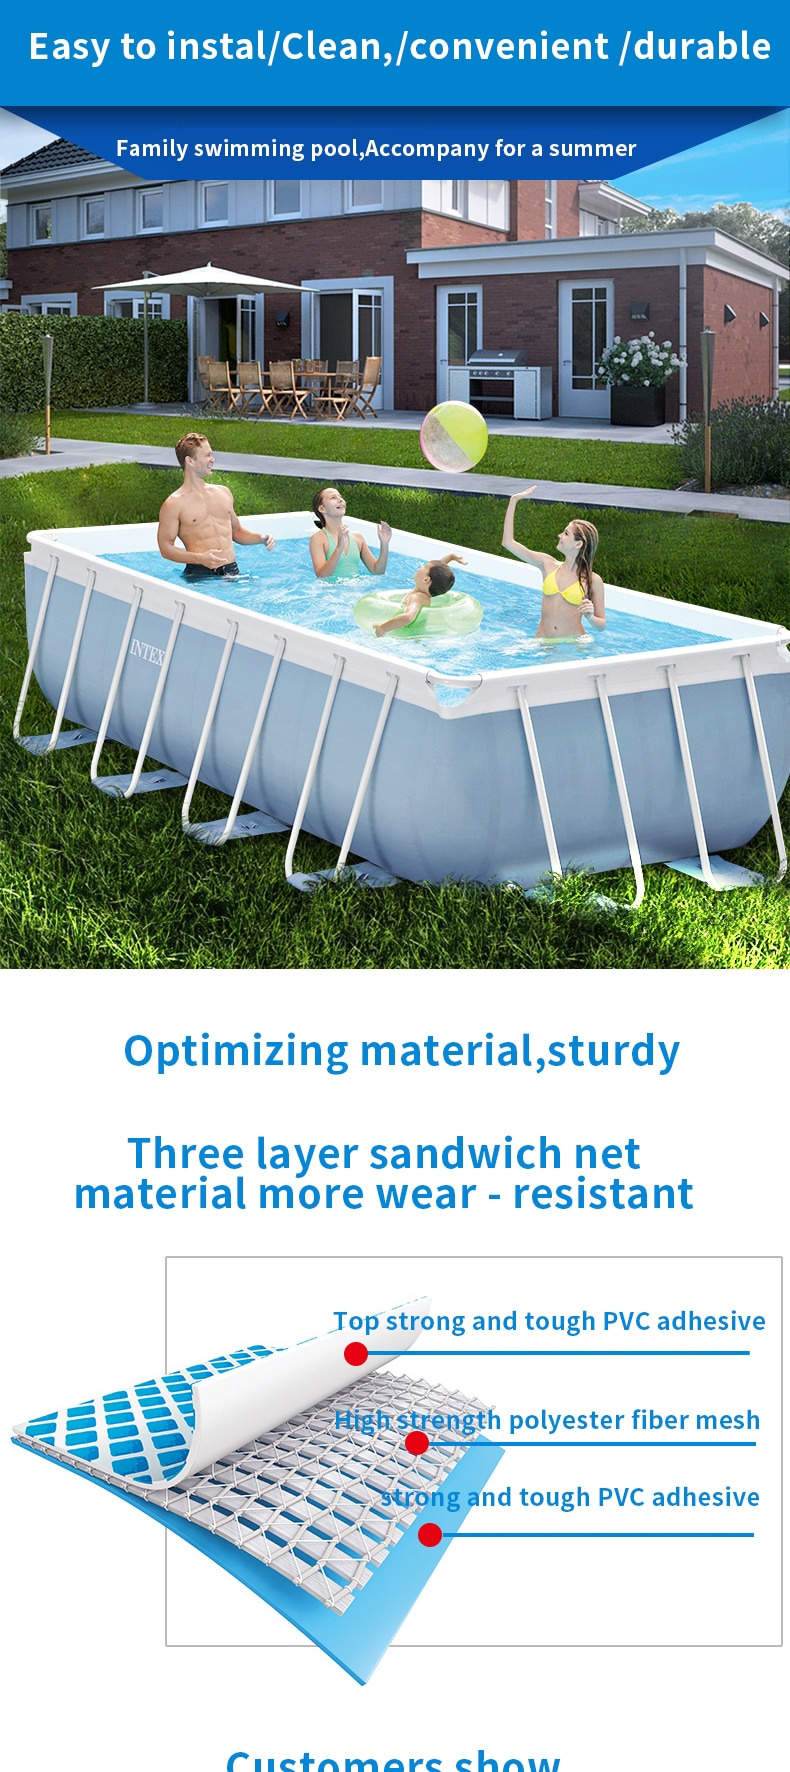 Hard Plastic Swimming Pool with Slide Elegant Intex Brand Swimming Pool Thickening Children S Home Large Pool Collapsible Pool Fish Pond Mercial Adult